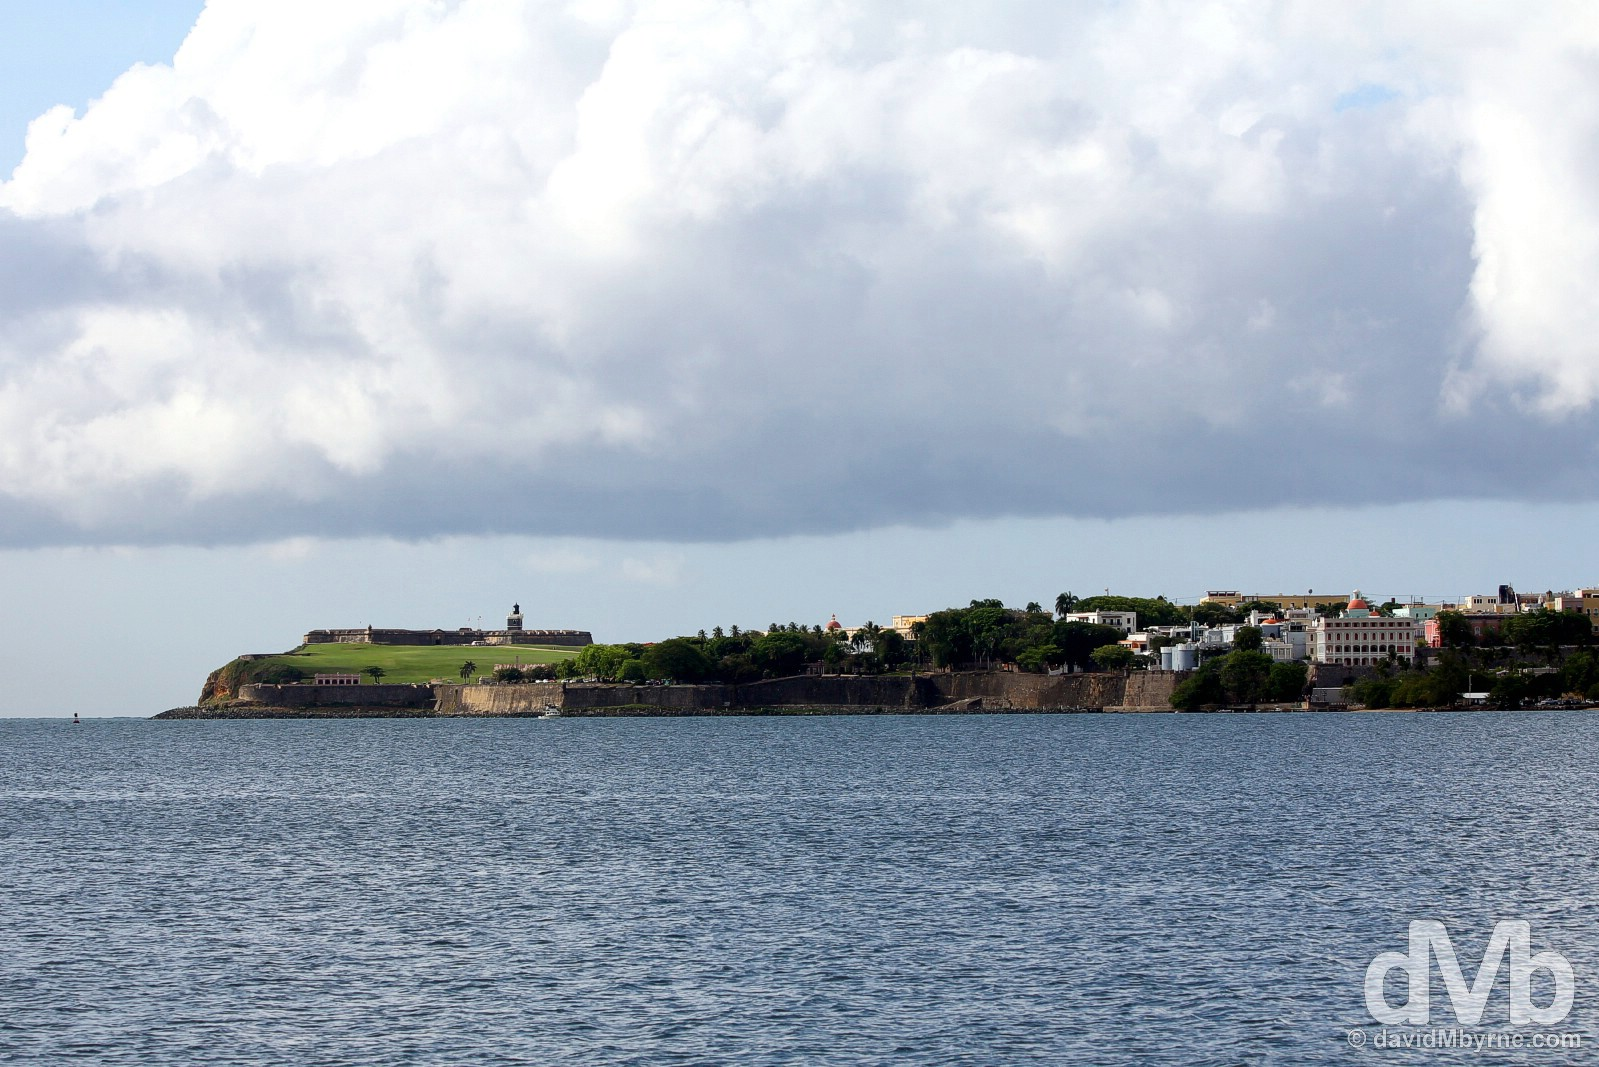 Old San Juan as seen from Bahia de San Juan in Cataño. Puerto Rico, Greater Antilles. June 2, 2015.